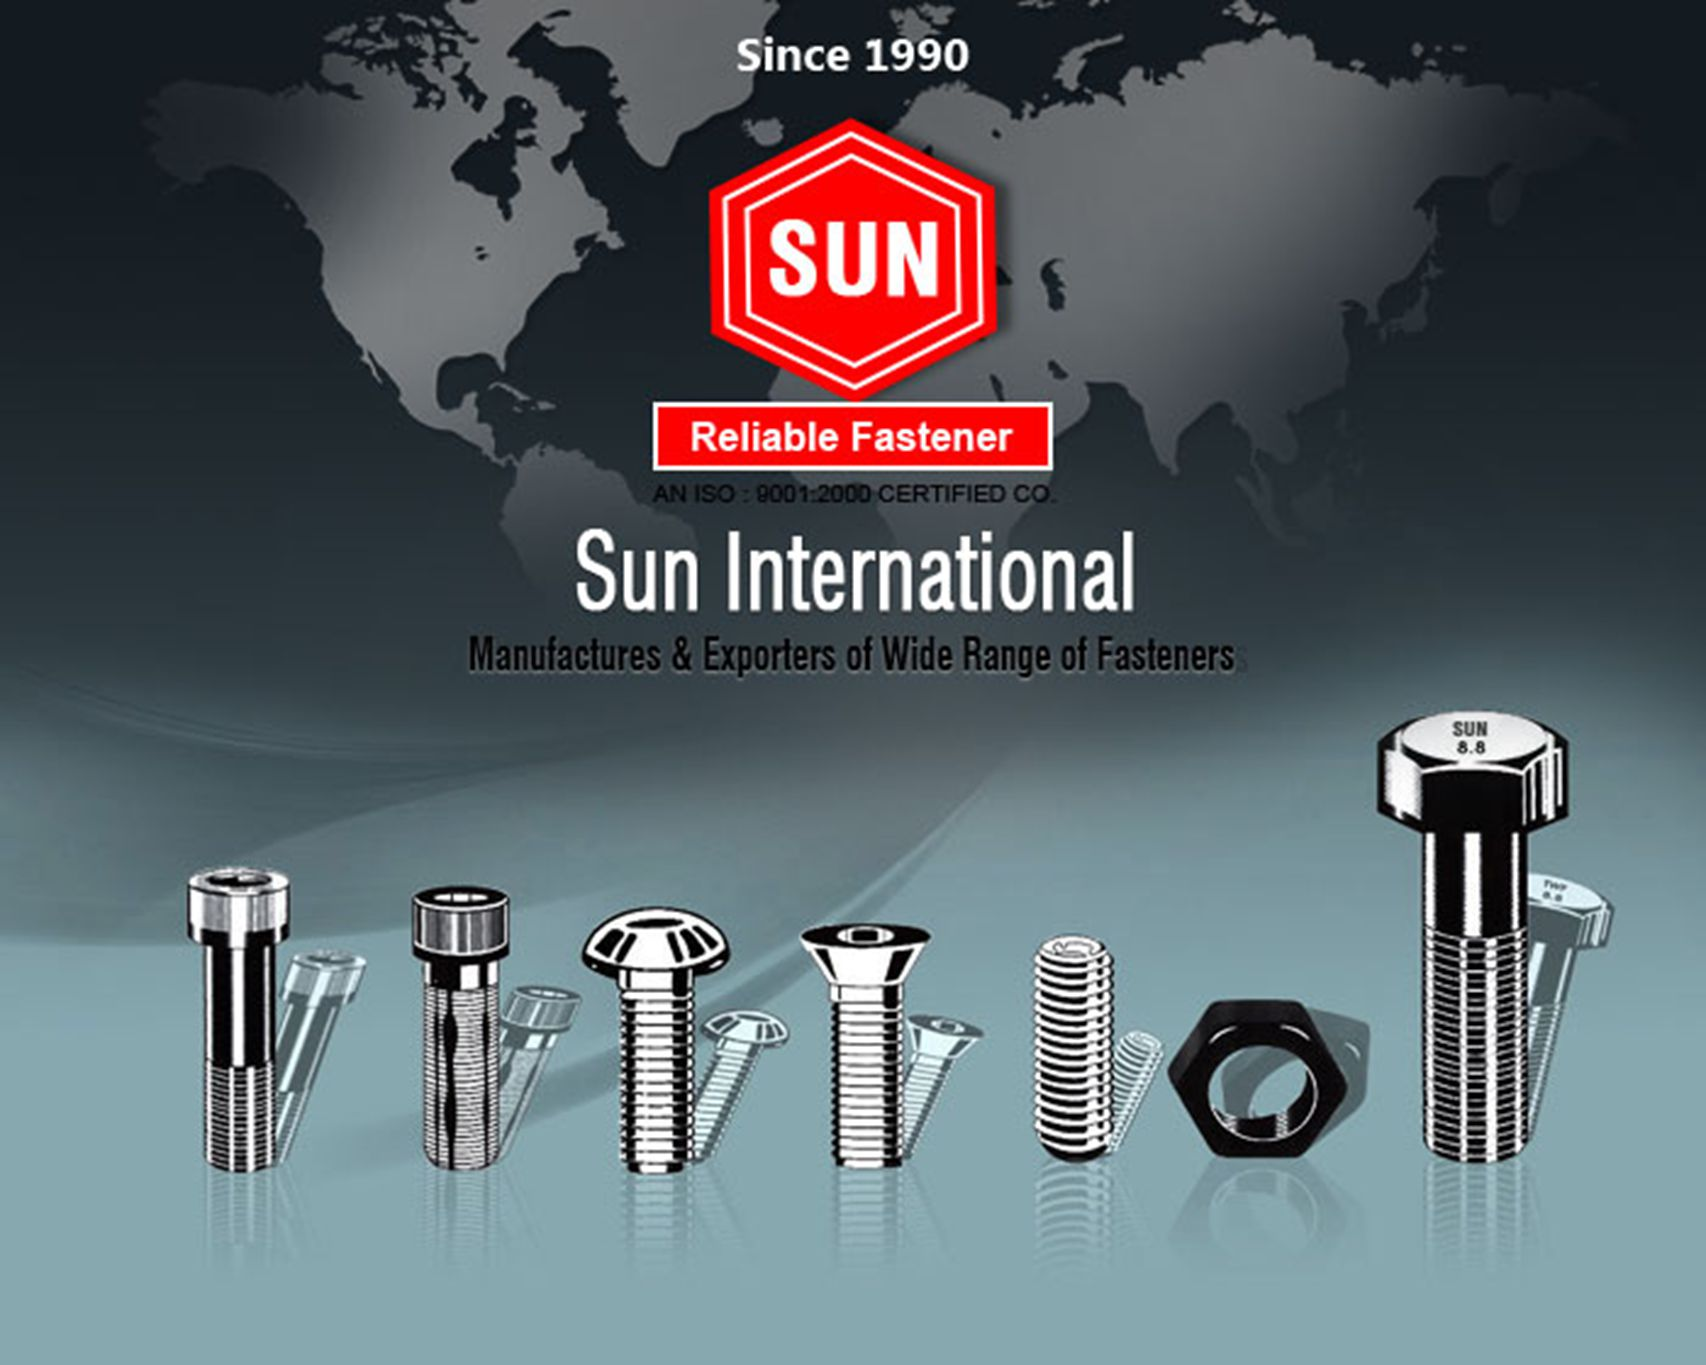 SUN INTERNATIONAL started the manufacturing of cold forged BOLTS under the brand name SUN .